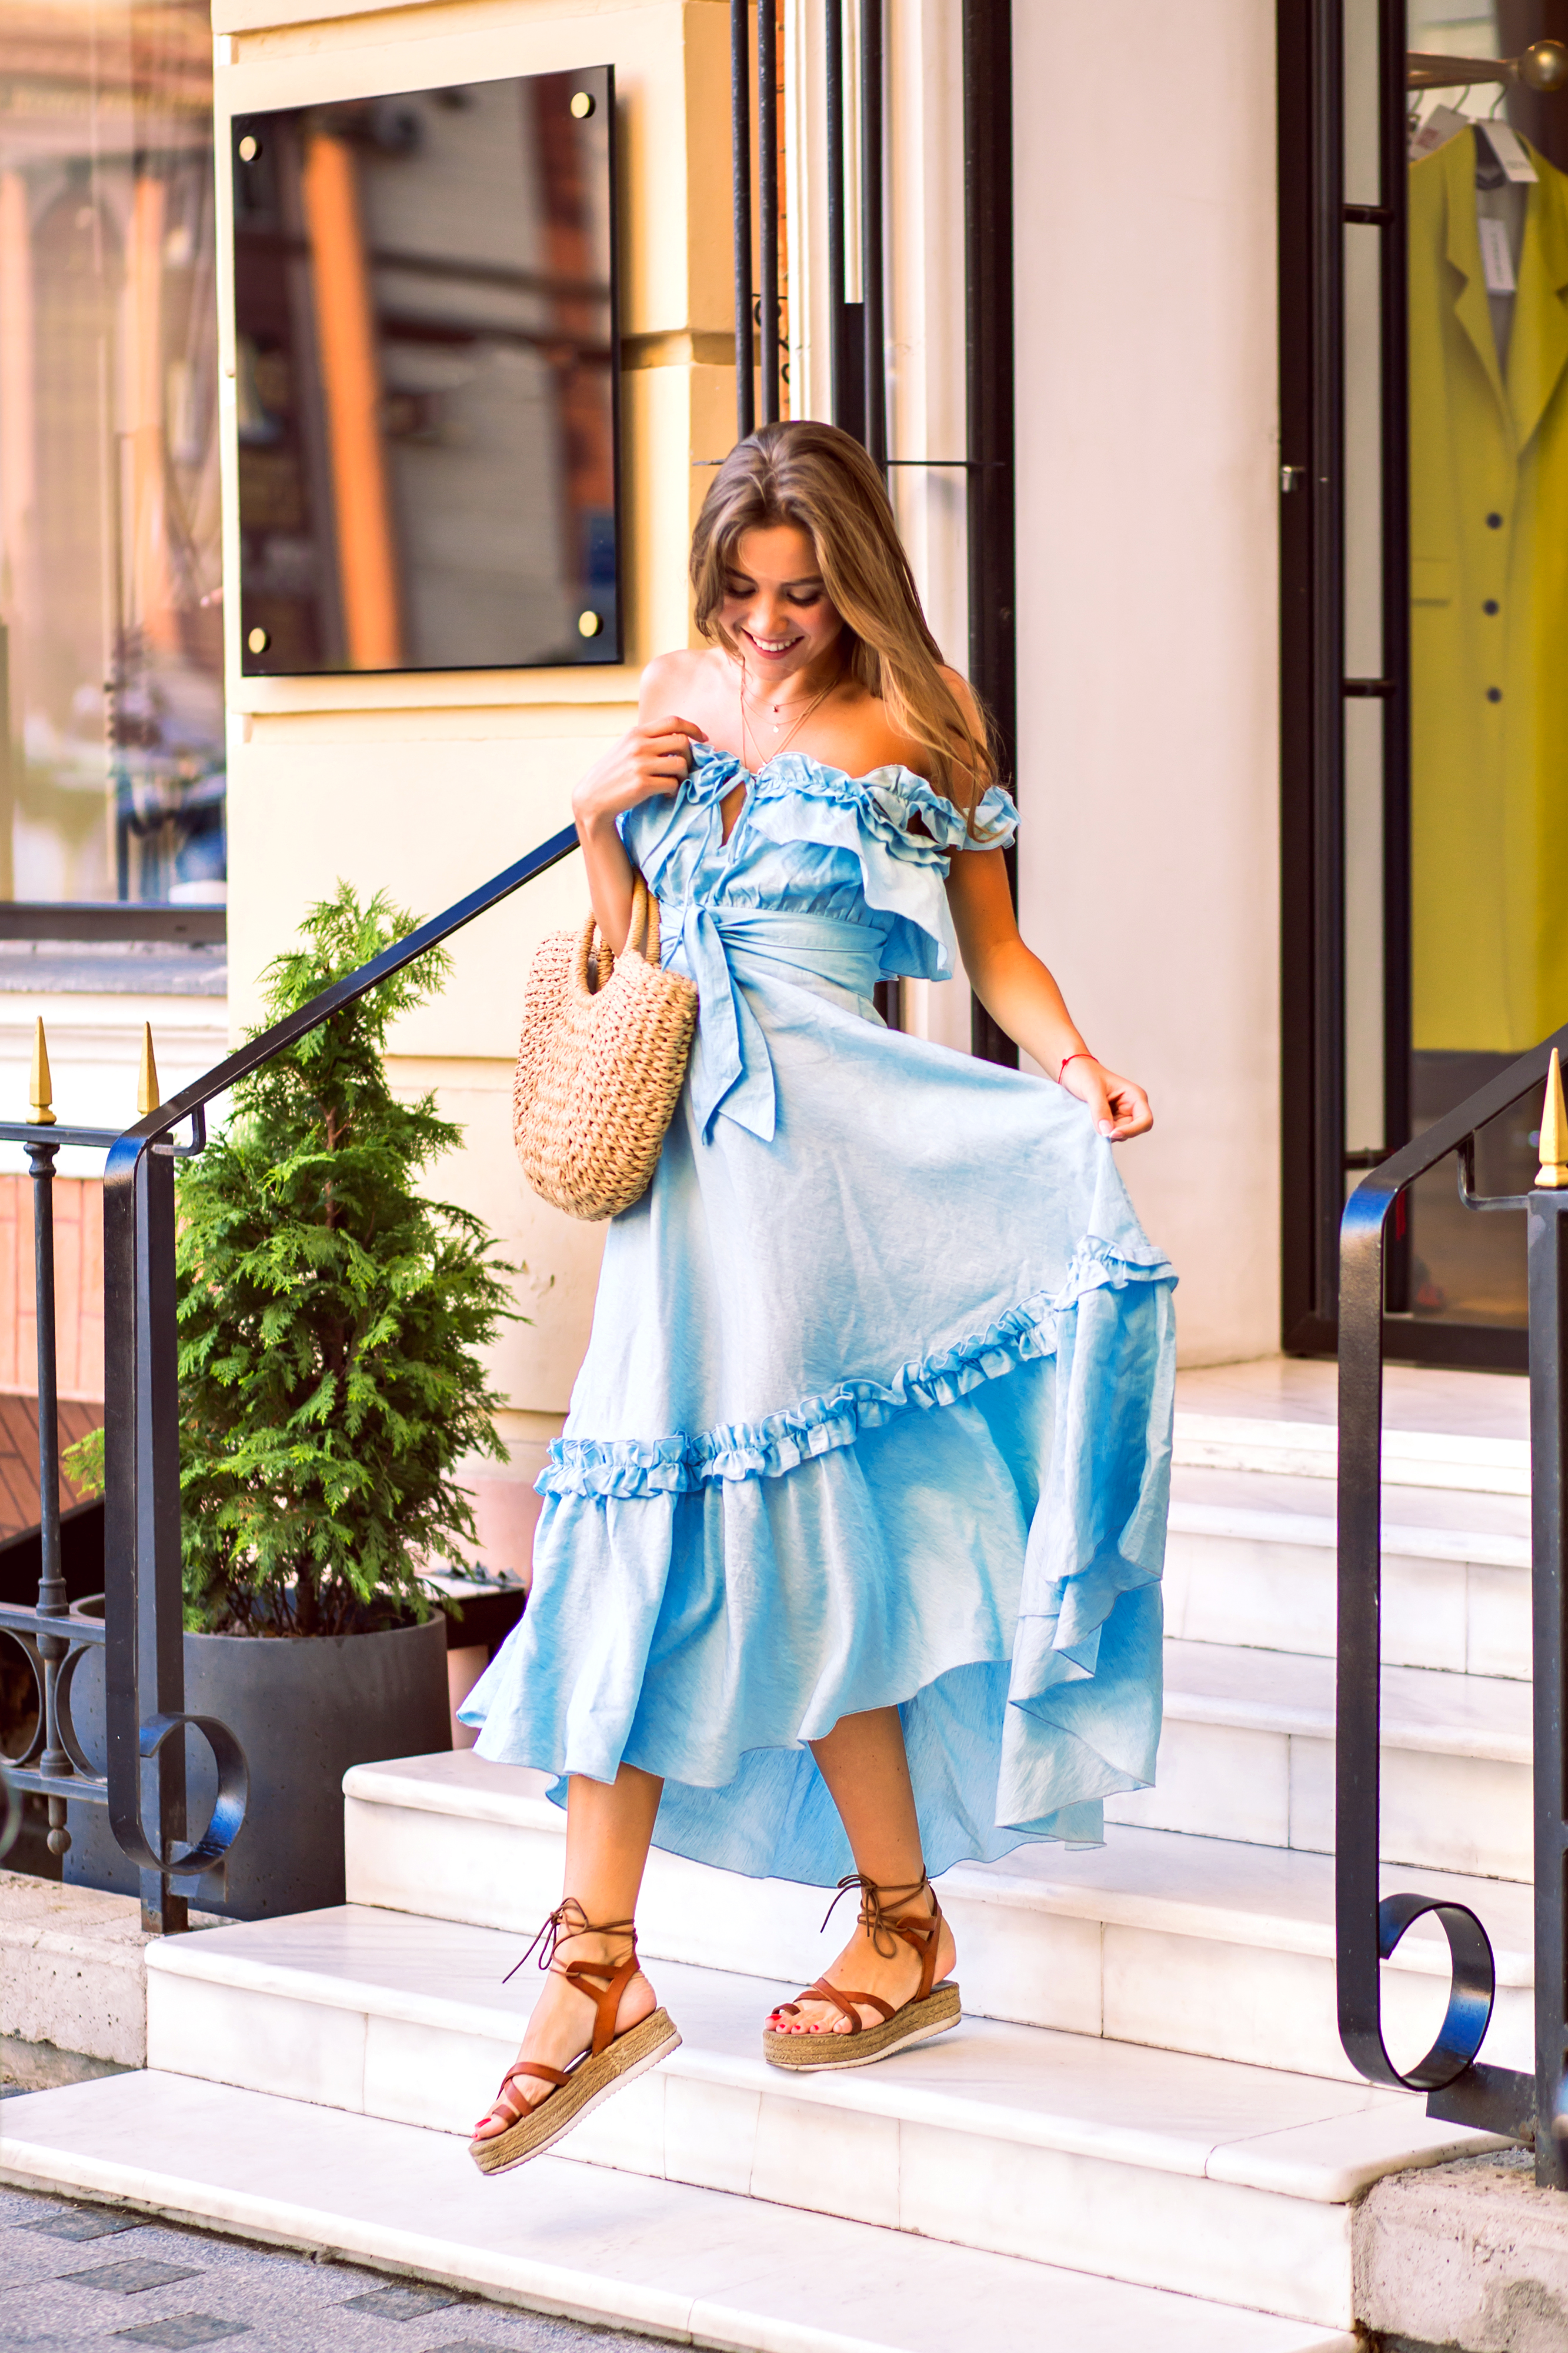 blogModacad-Estilo-Primavera-Ver-o-magnificent-positive-young-stylish-woman-posing-on-the-street-wearing-feminine-trendy-dress-and-straw-bag-soft-sunny-colors-summer-vacation-time